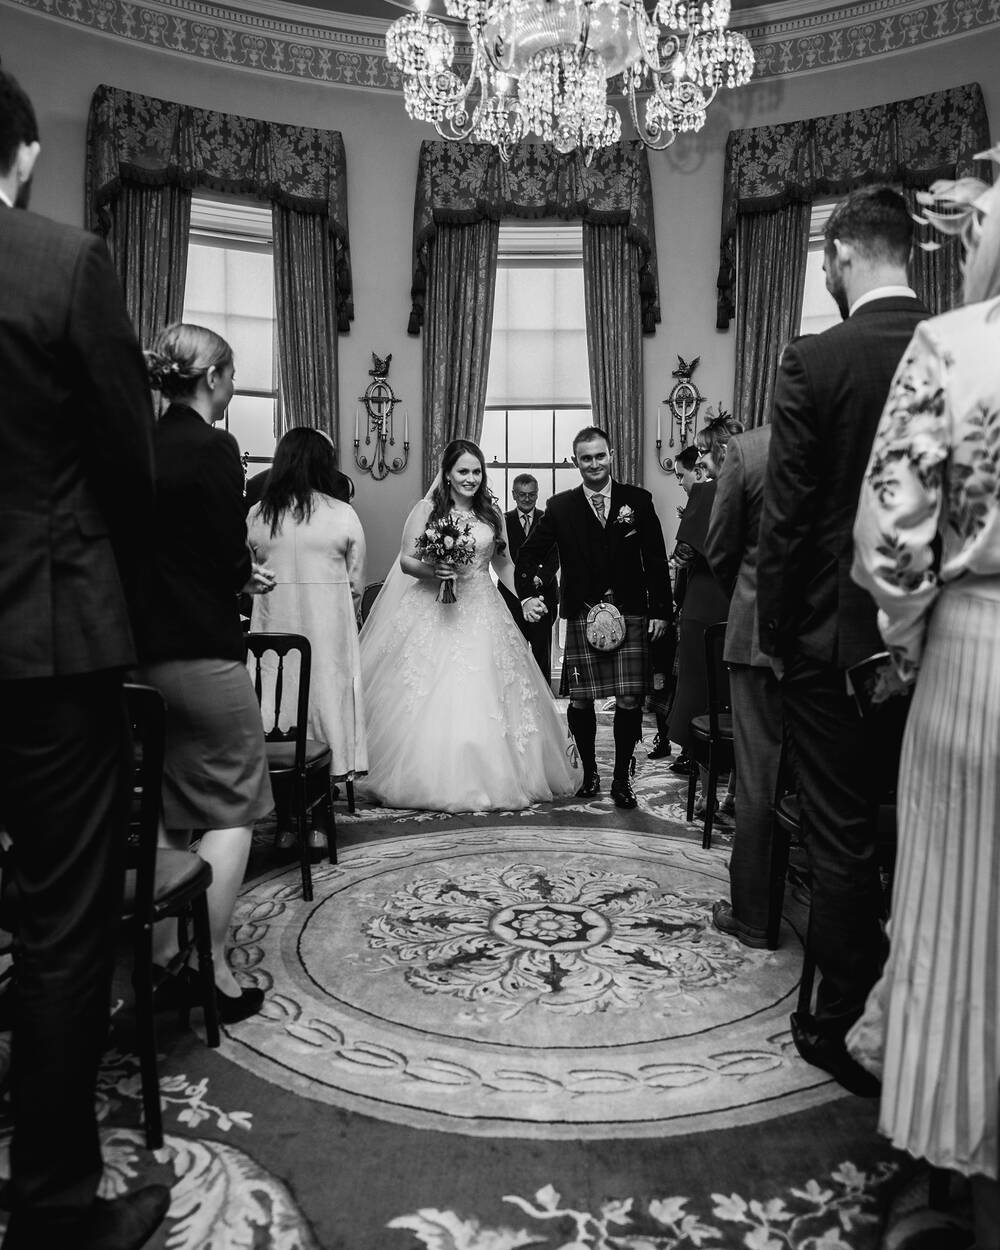 Michael and Louise Morran, married at Culzean Castle & Country Park